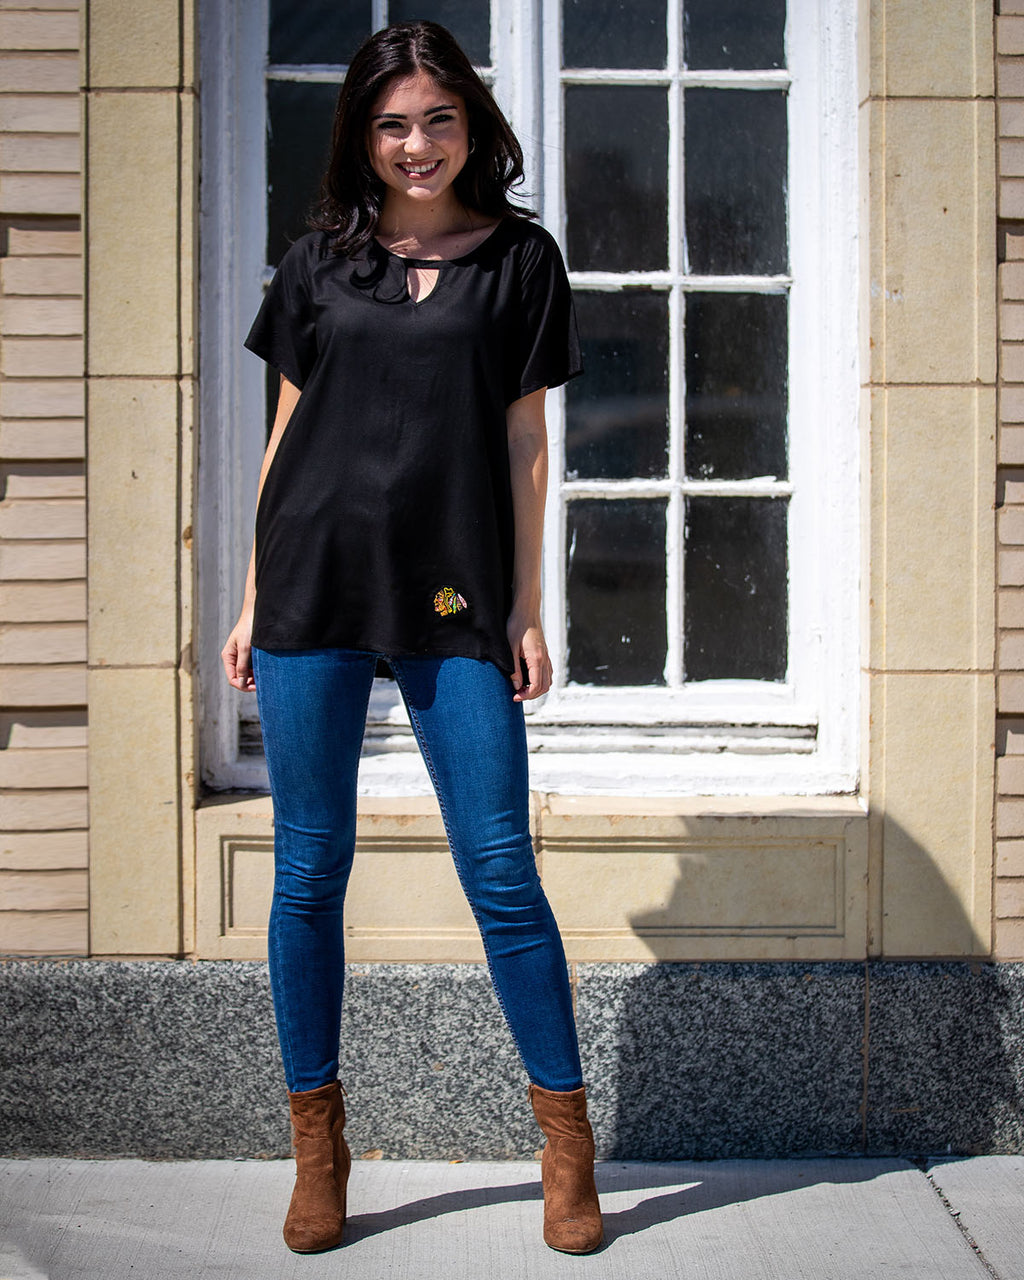 Ladies UG Apparel Black Tunic